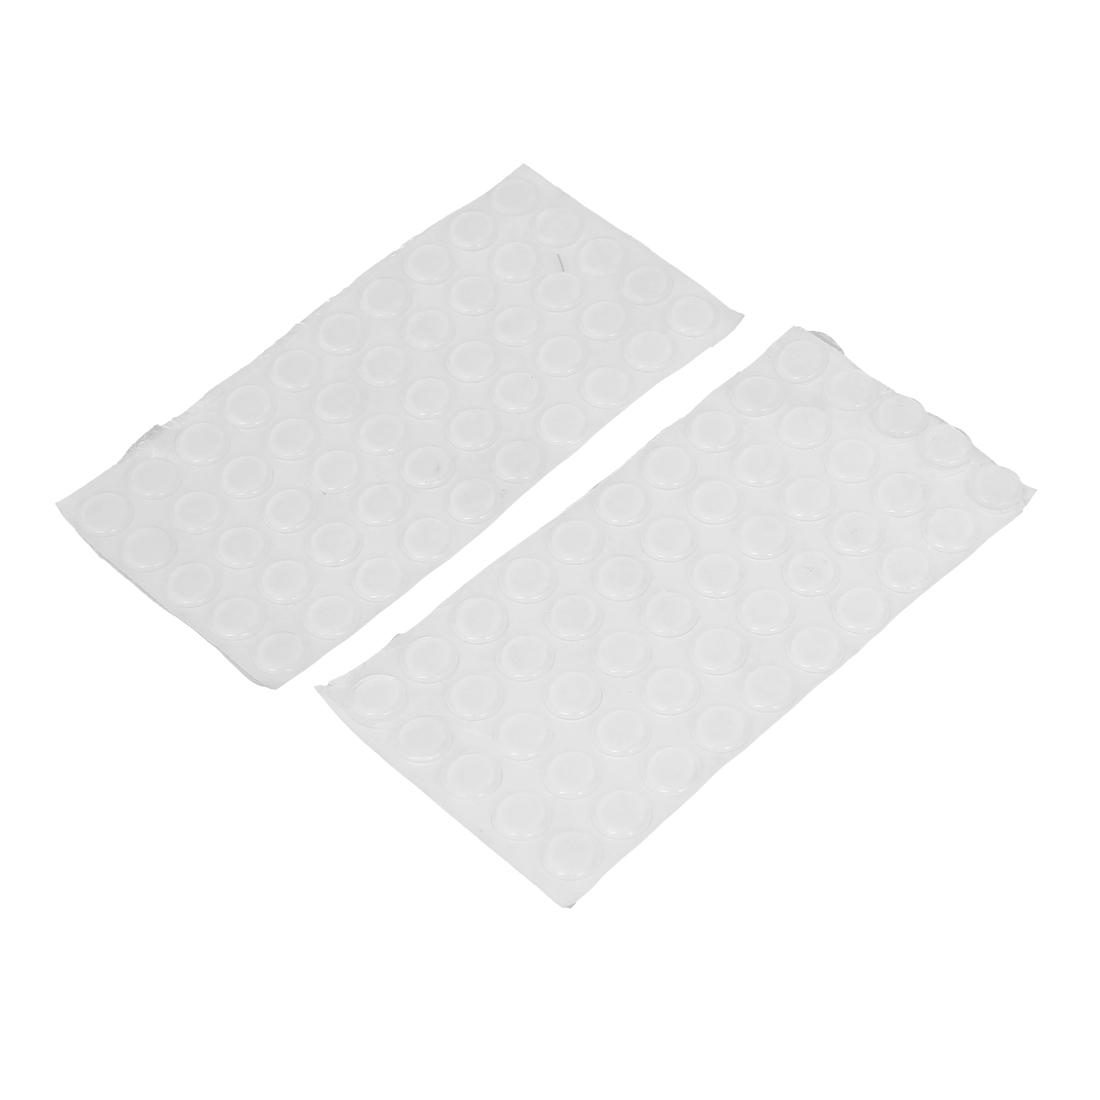 10mm Dia Self-adhesive Kitchen Cabinet Furniture Home Door Pad Protection 100Pcs